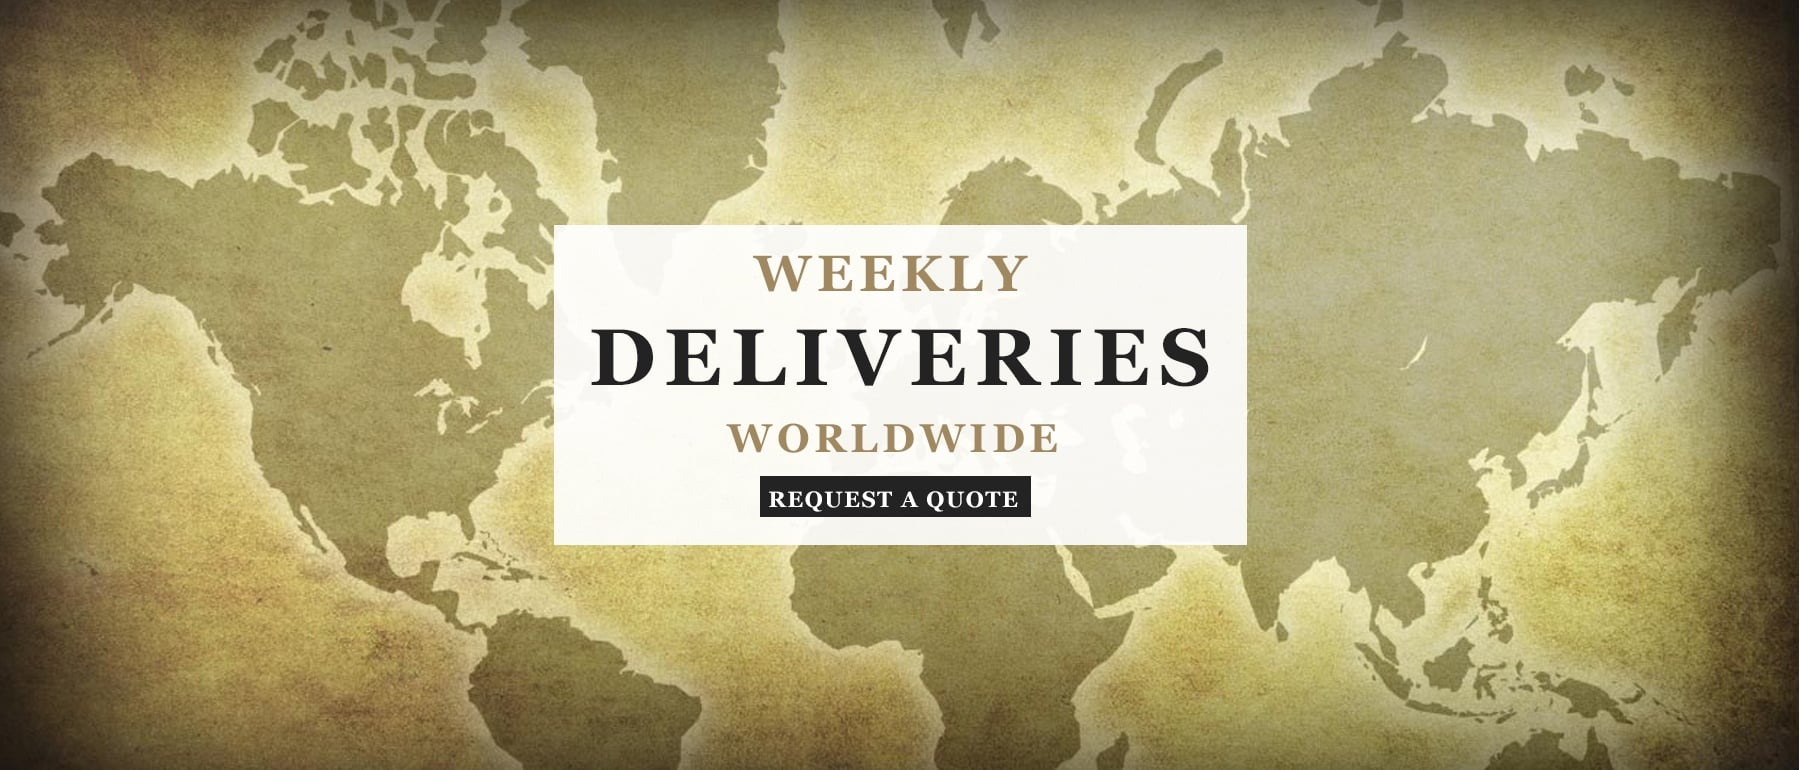 Weekly Deliveries Worldwide